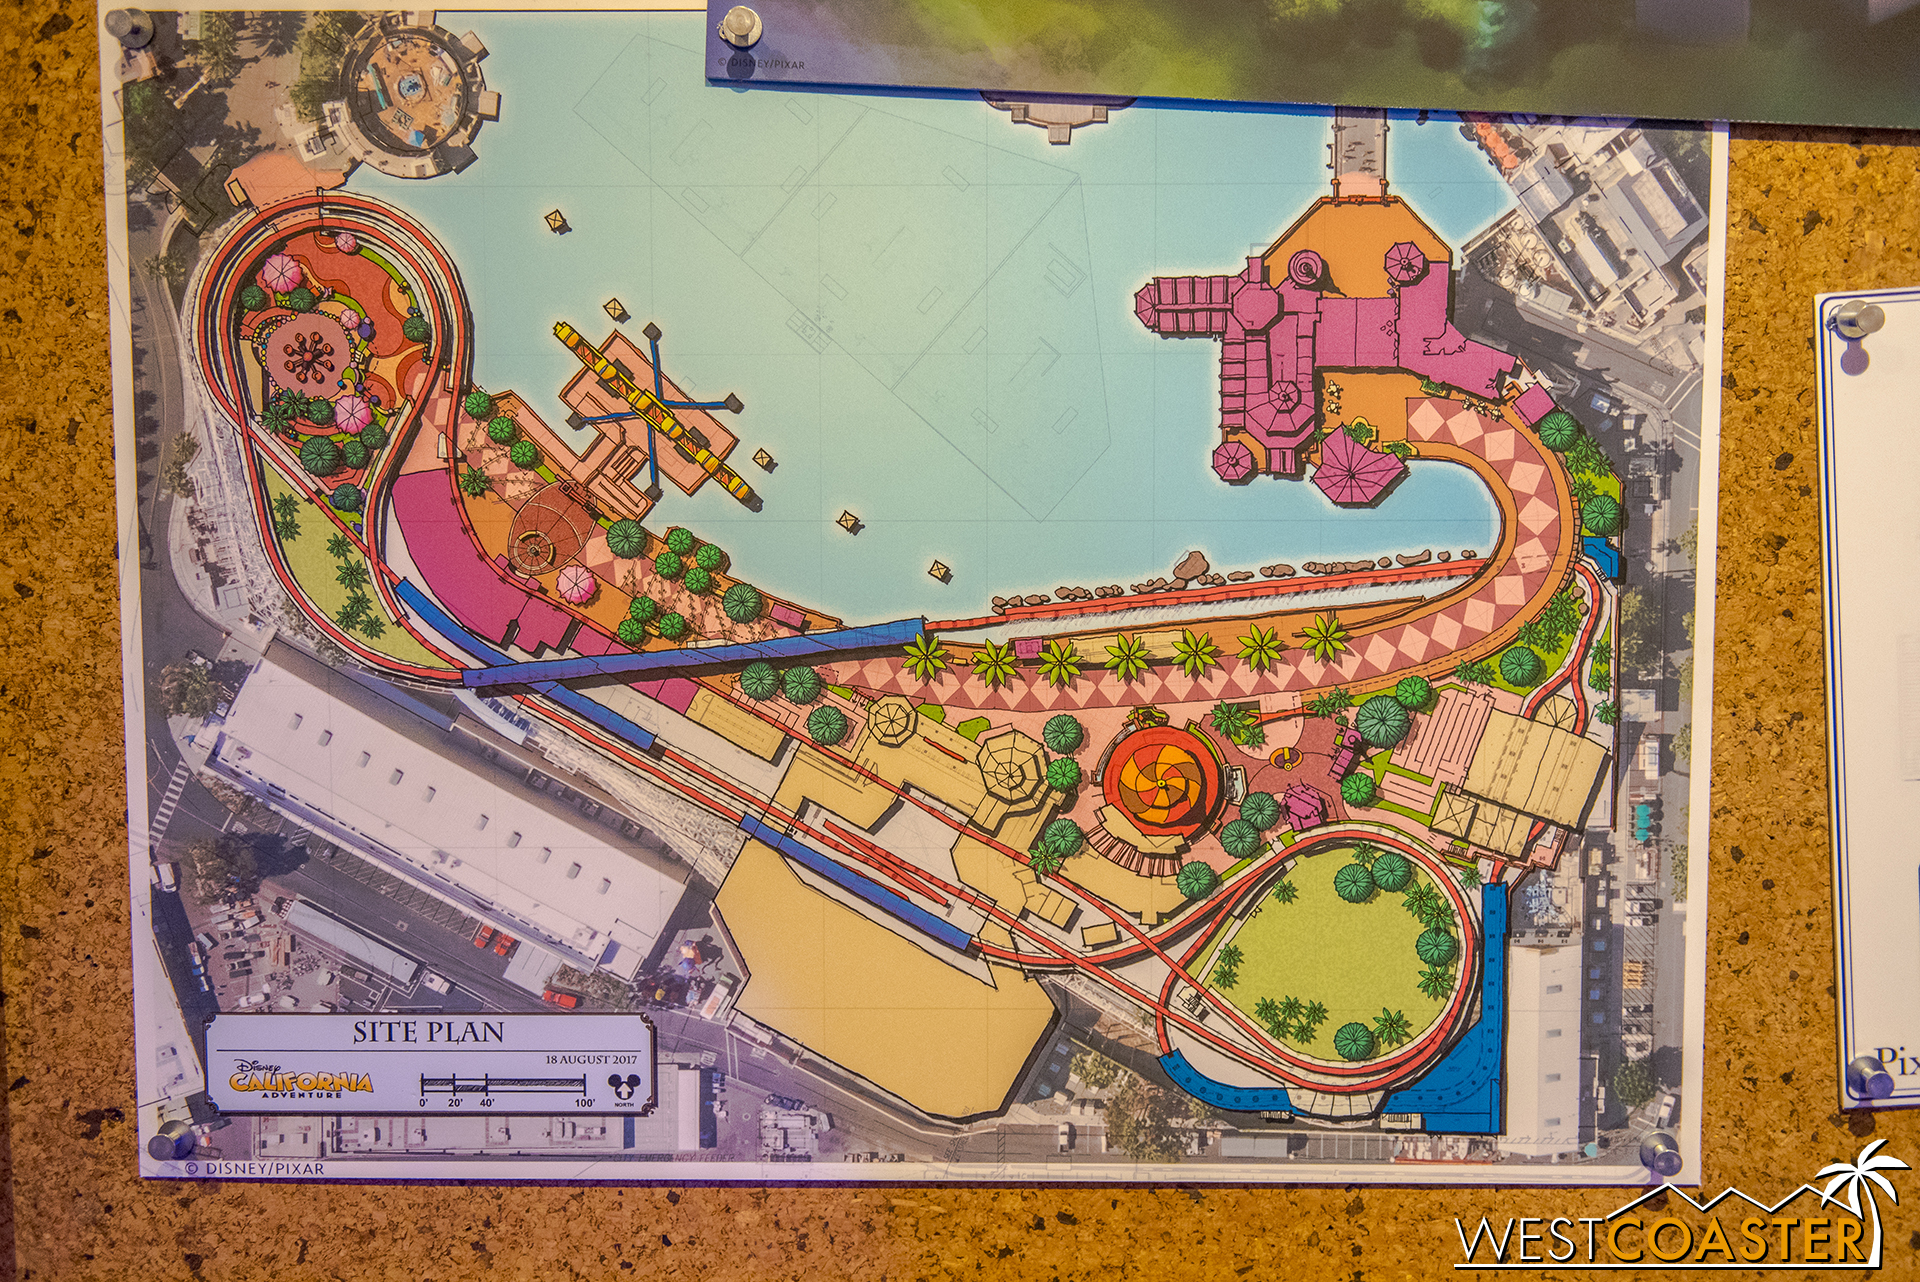 Pieces like this colored site plan showcase what the Imagineers work through during their design projects.